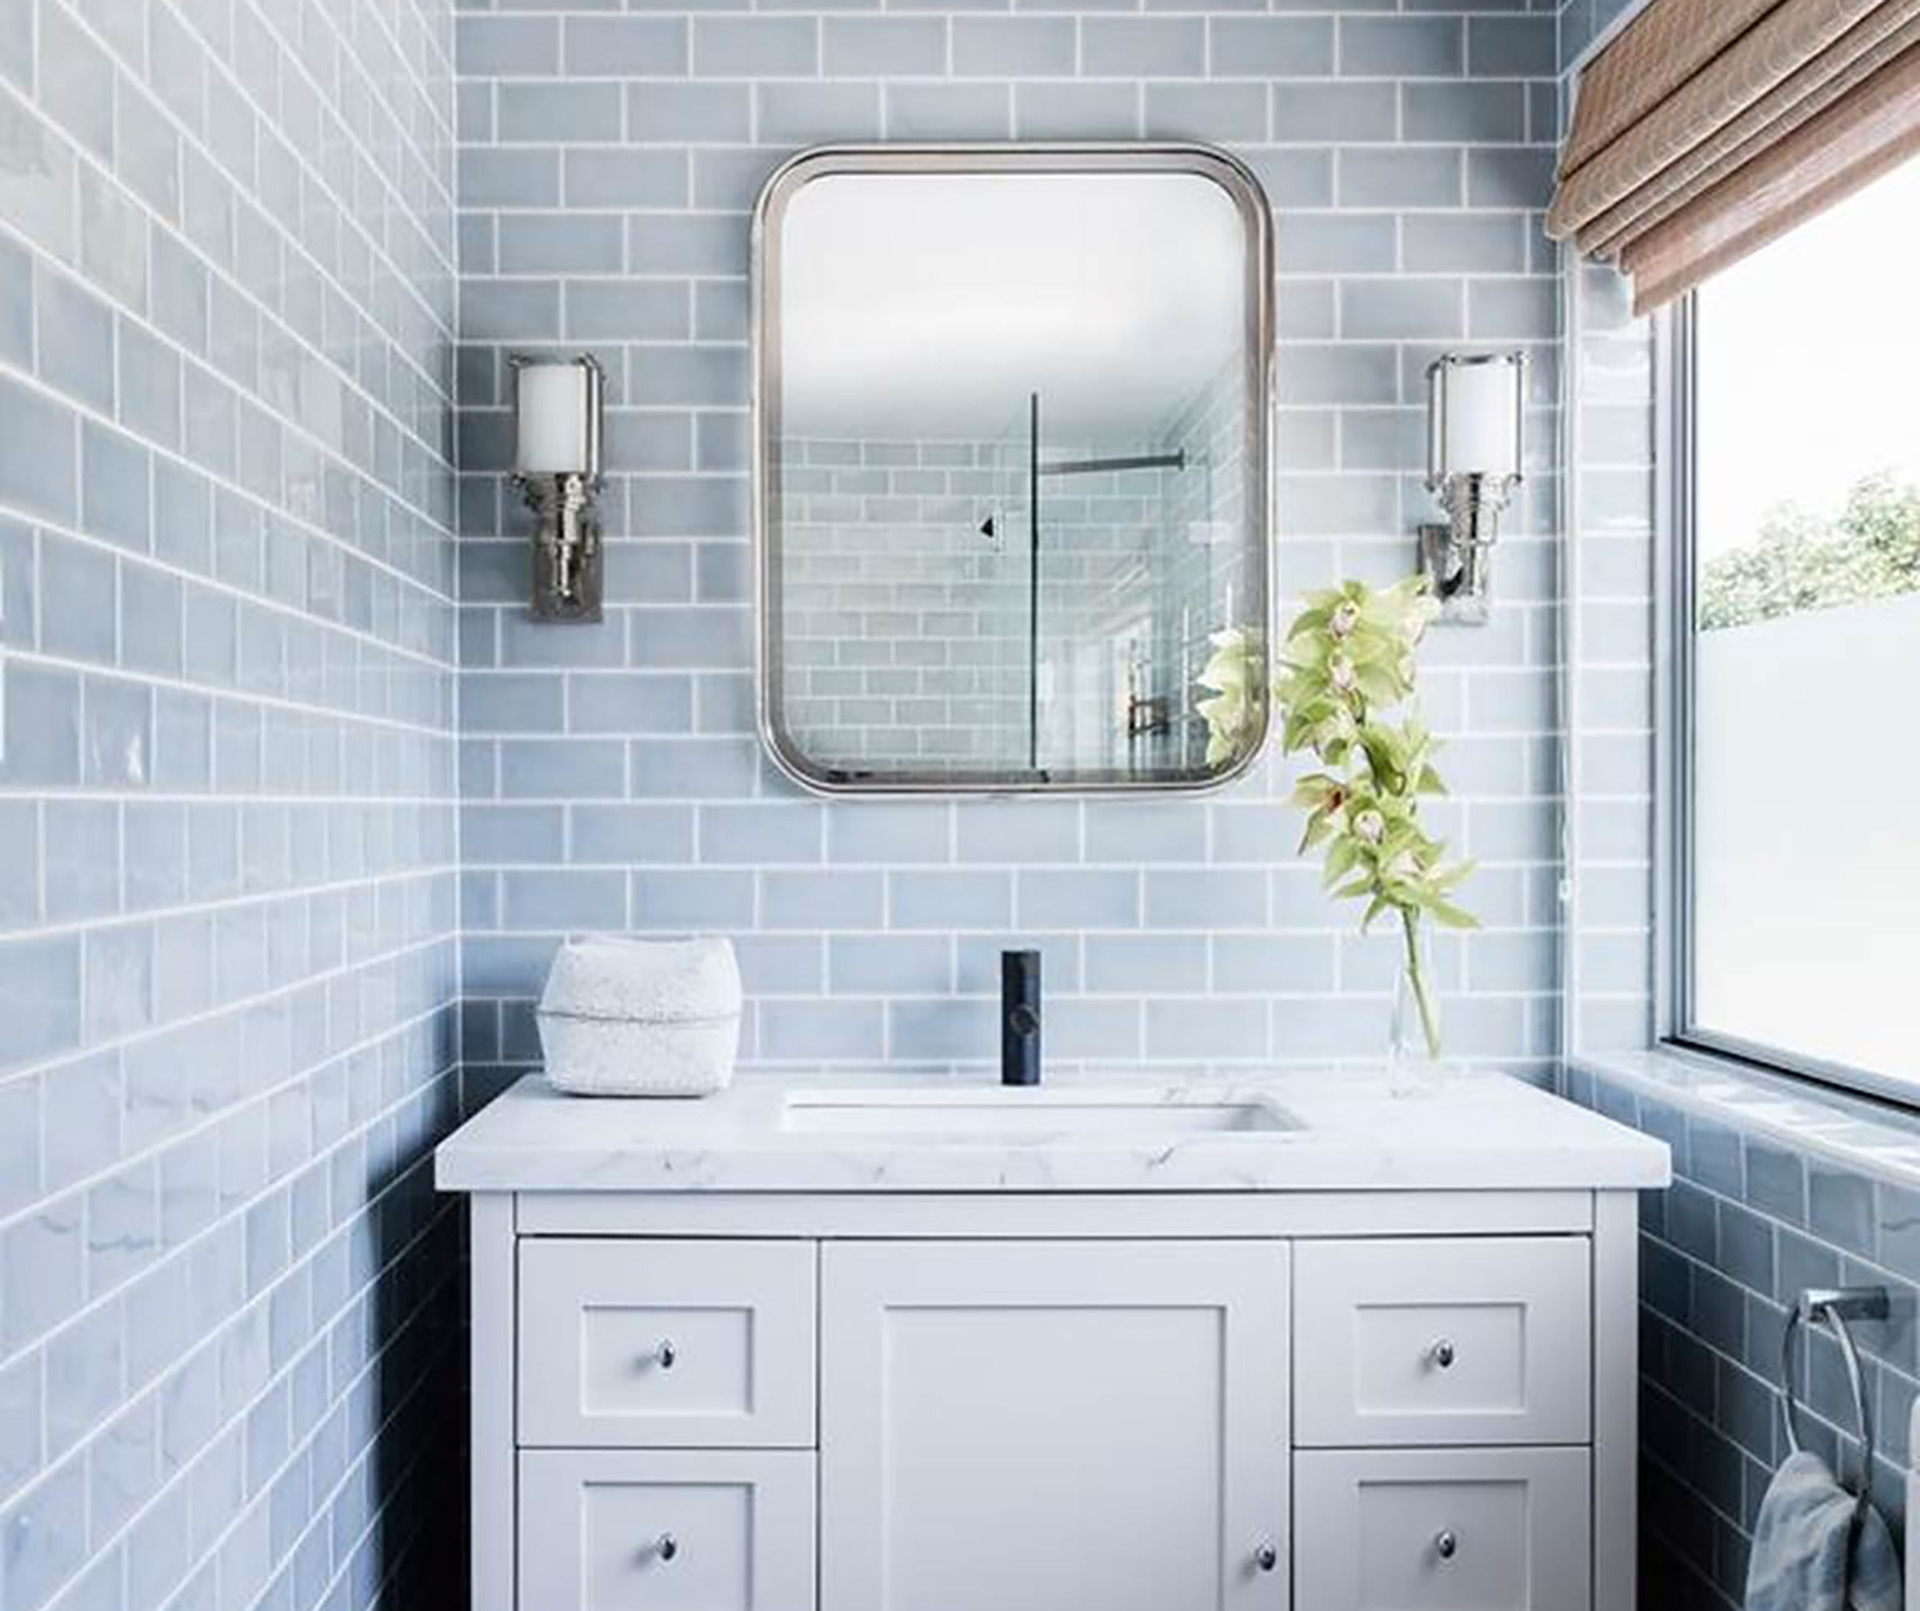 8 beautiful blue bathroom design ideas | Australian House and Garden